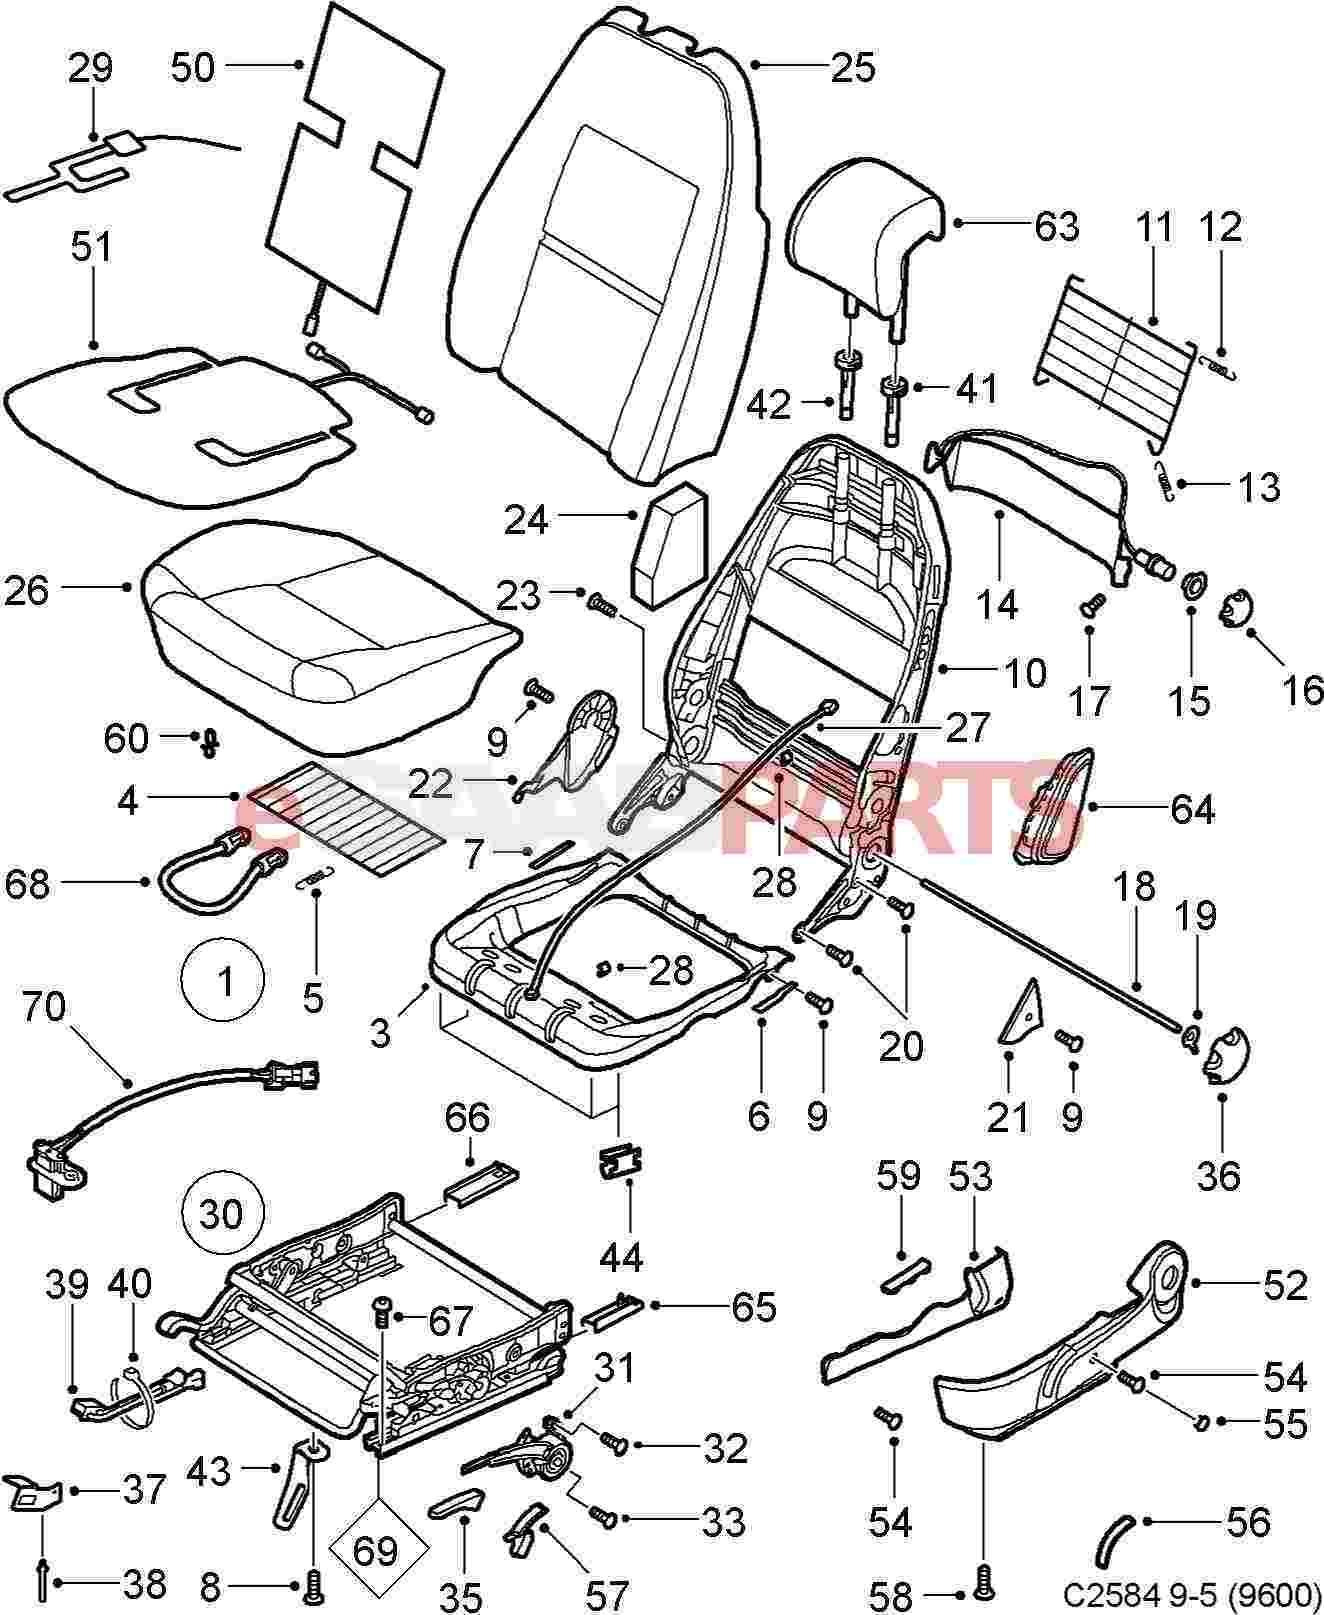 hight resolution of esaabparts com saab 9 5 9600 u003e car body internal parts u003e seat rh esaabparts com